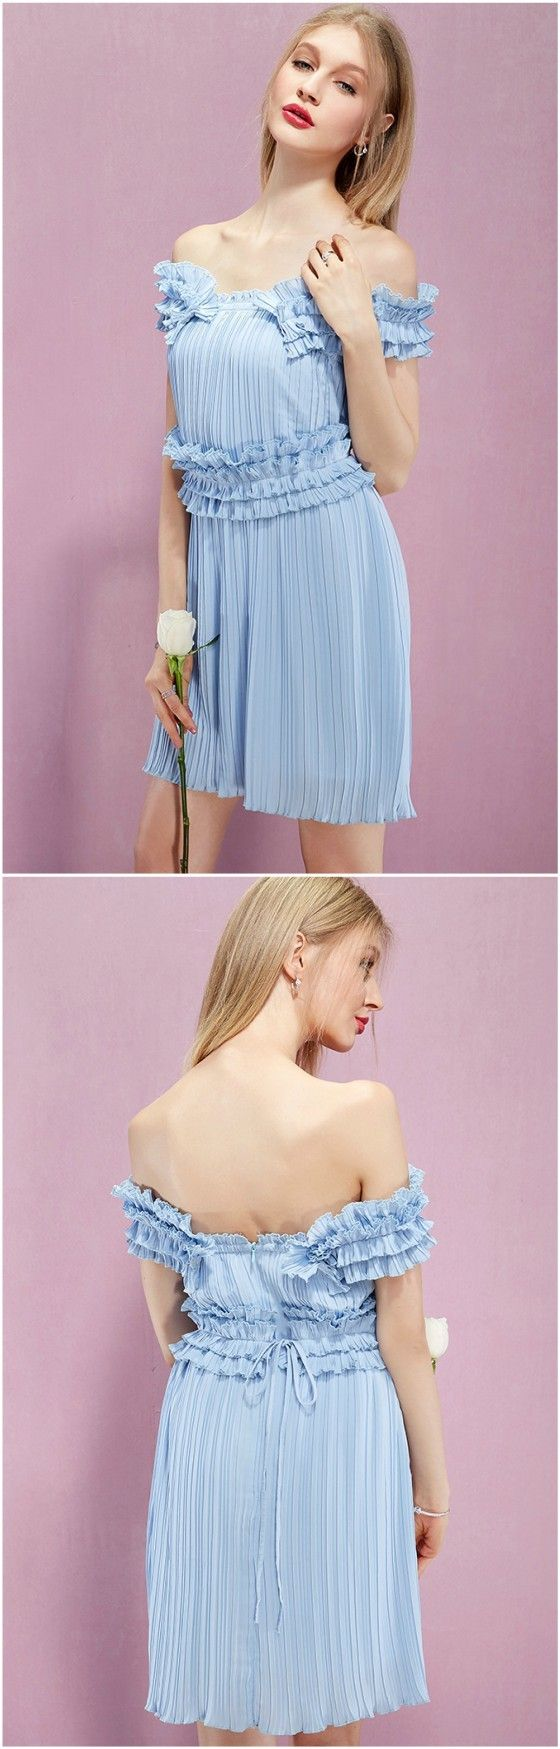 Baby Bule Off-the-shoulder Pleated Short Holidays Dress